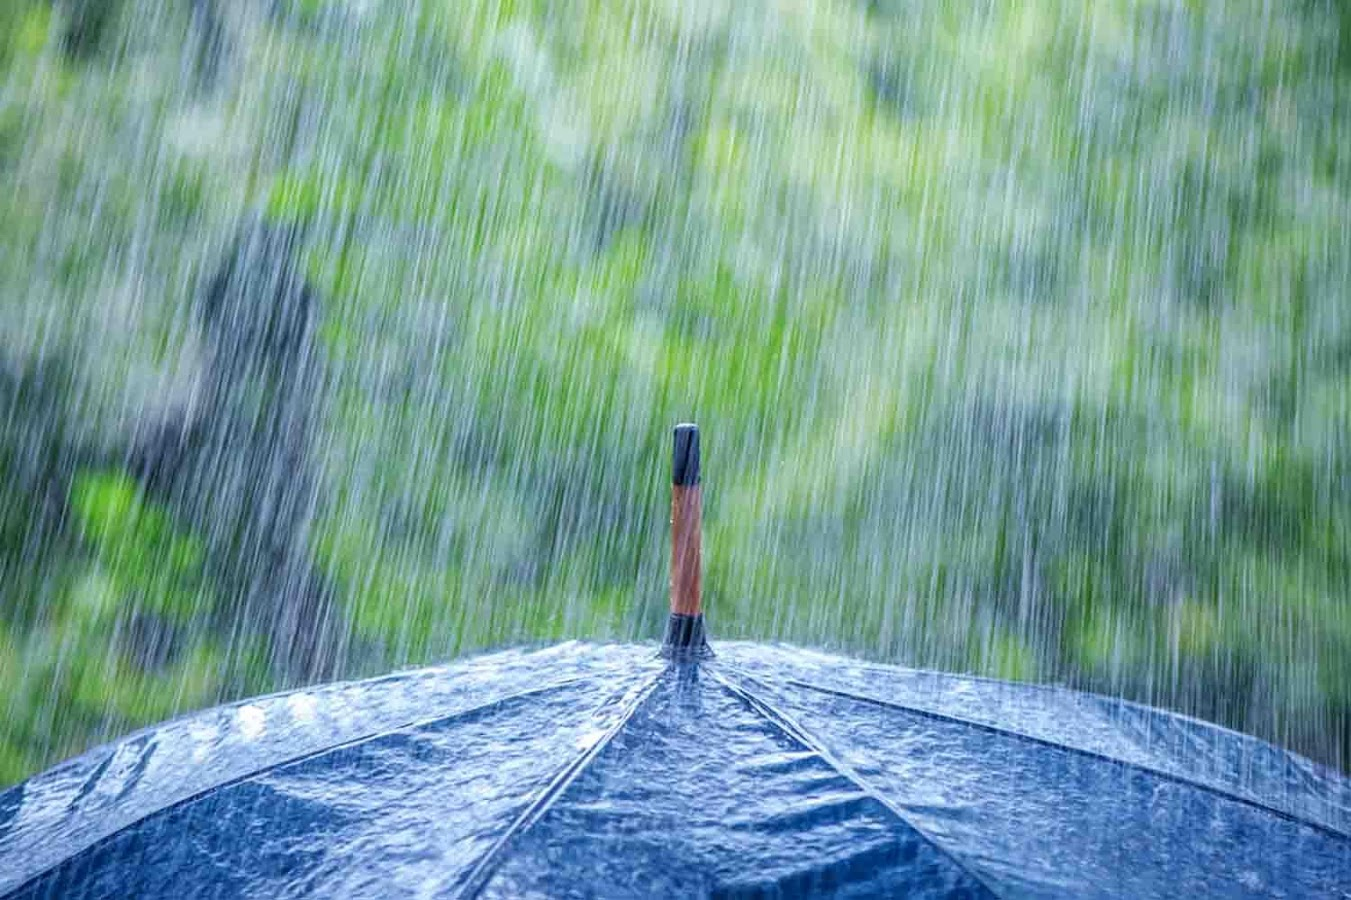 Rain Wallpaper Android Apps on Google Play